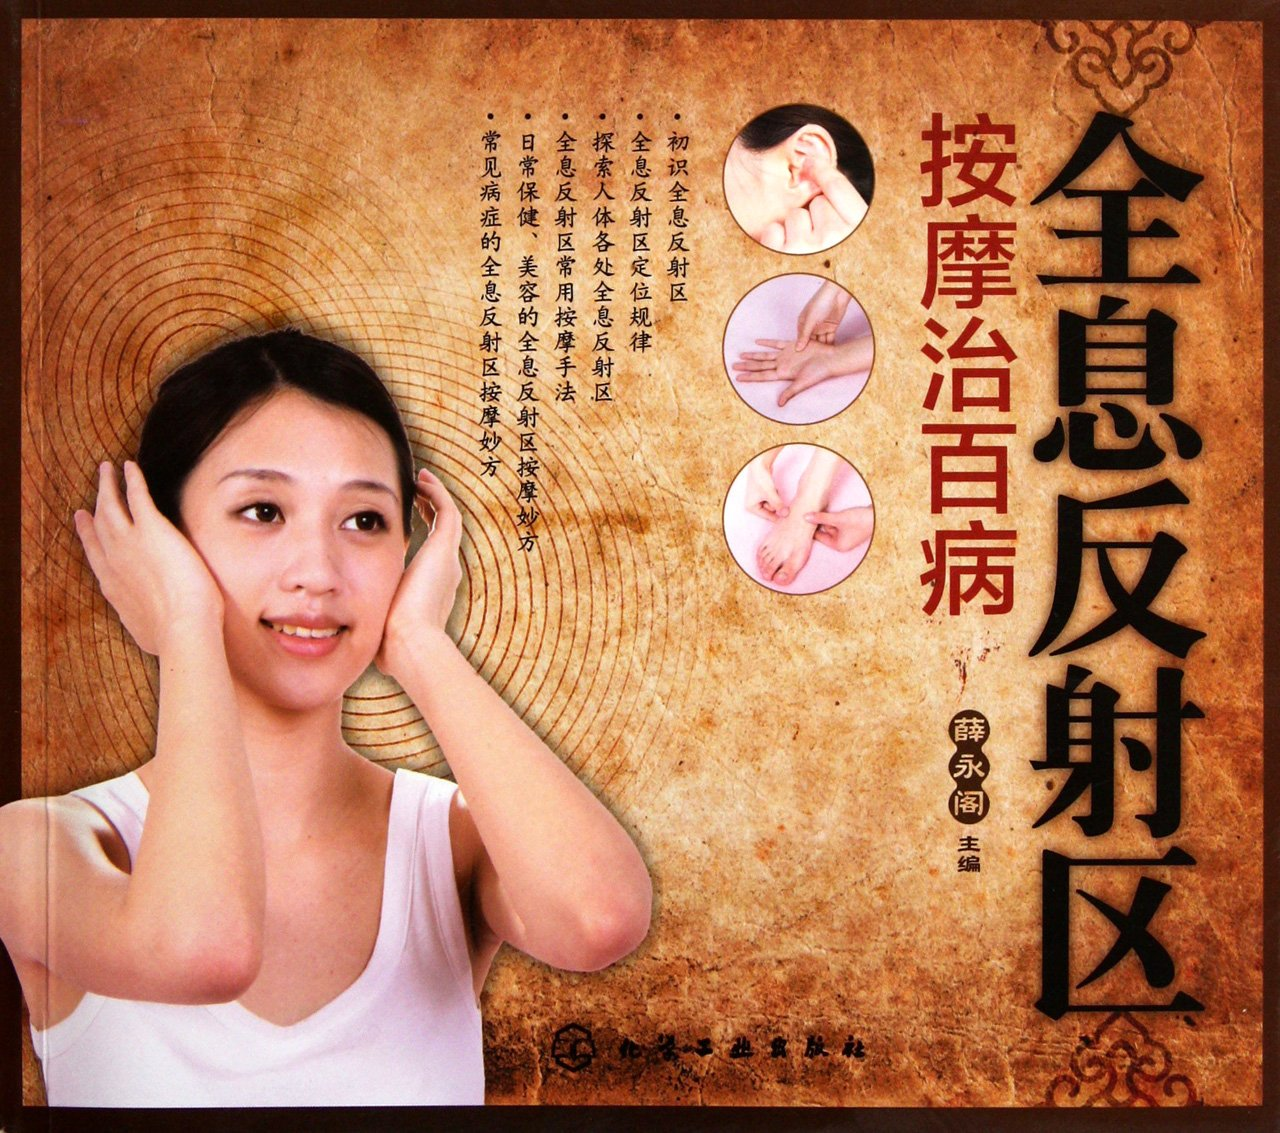 Holography Reflection and Massage Treatment (Chinese Edition)